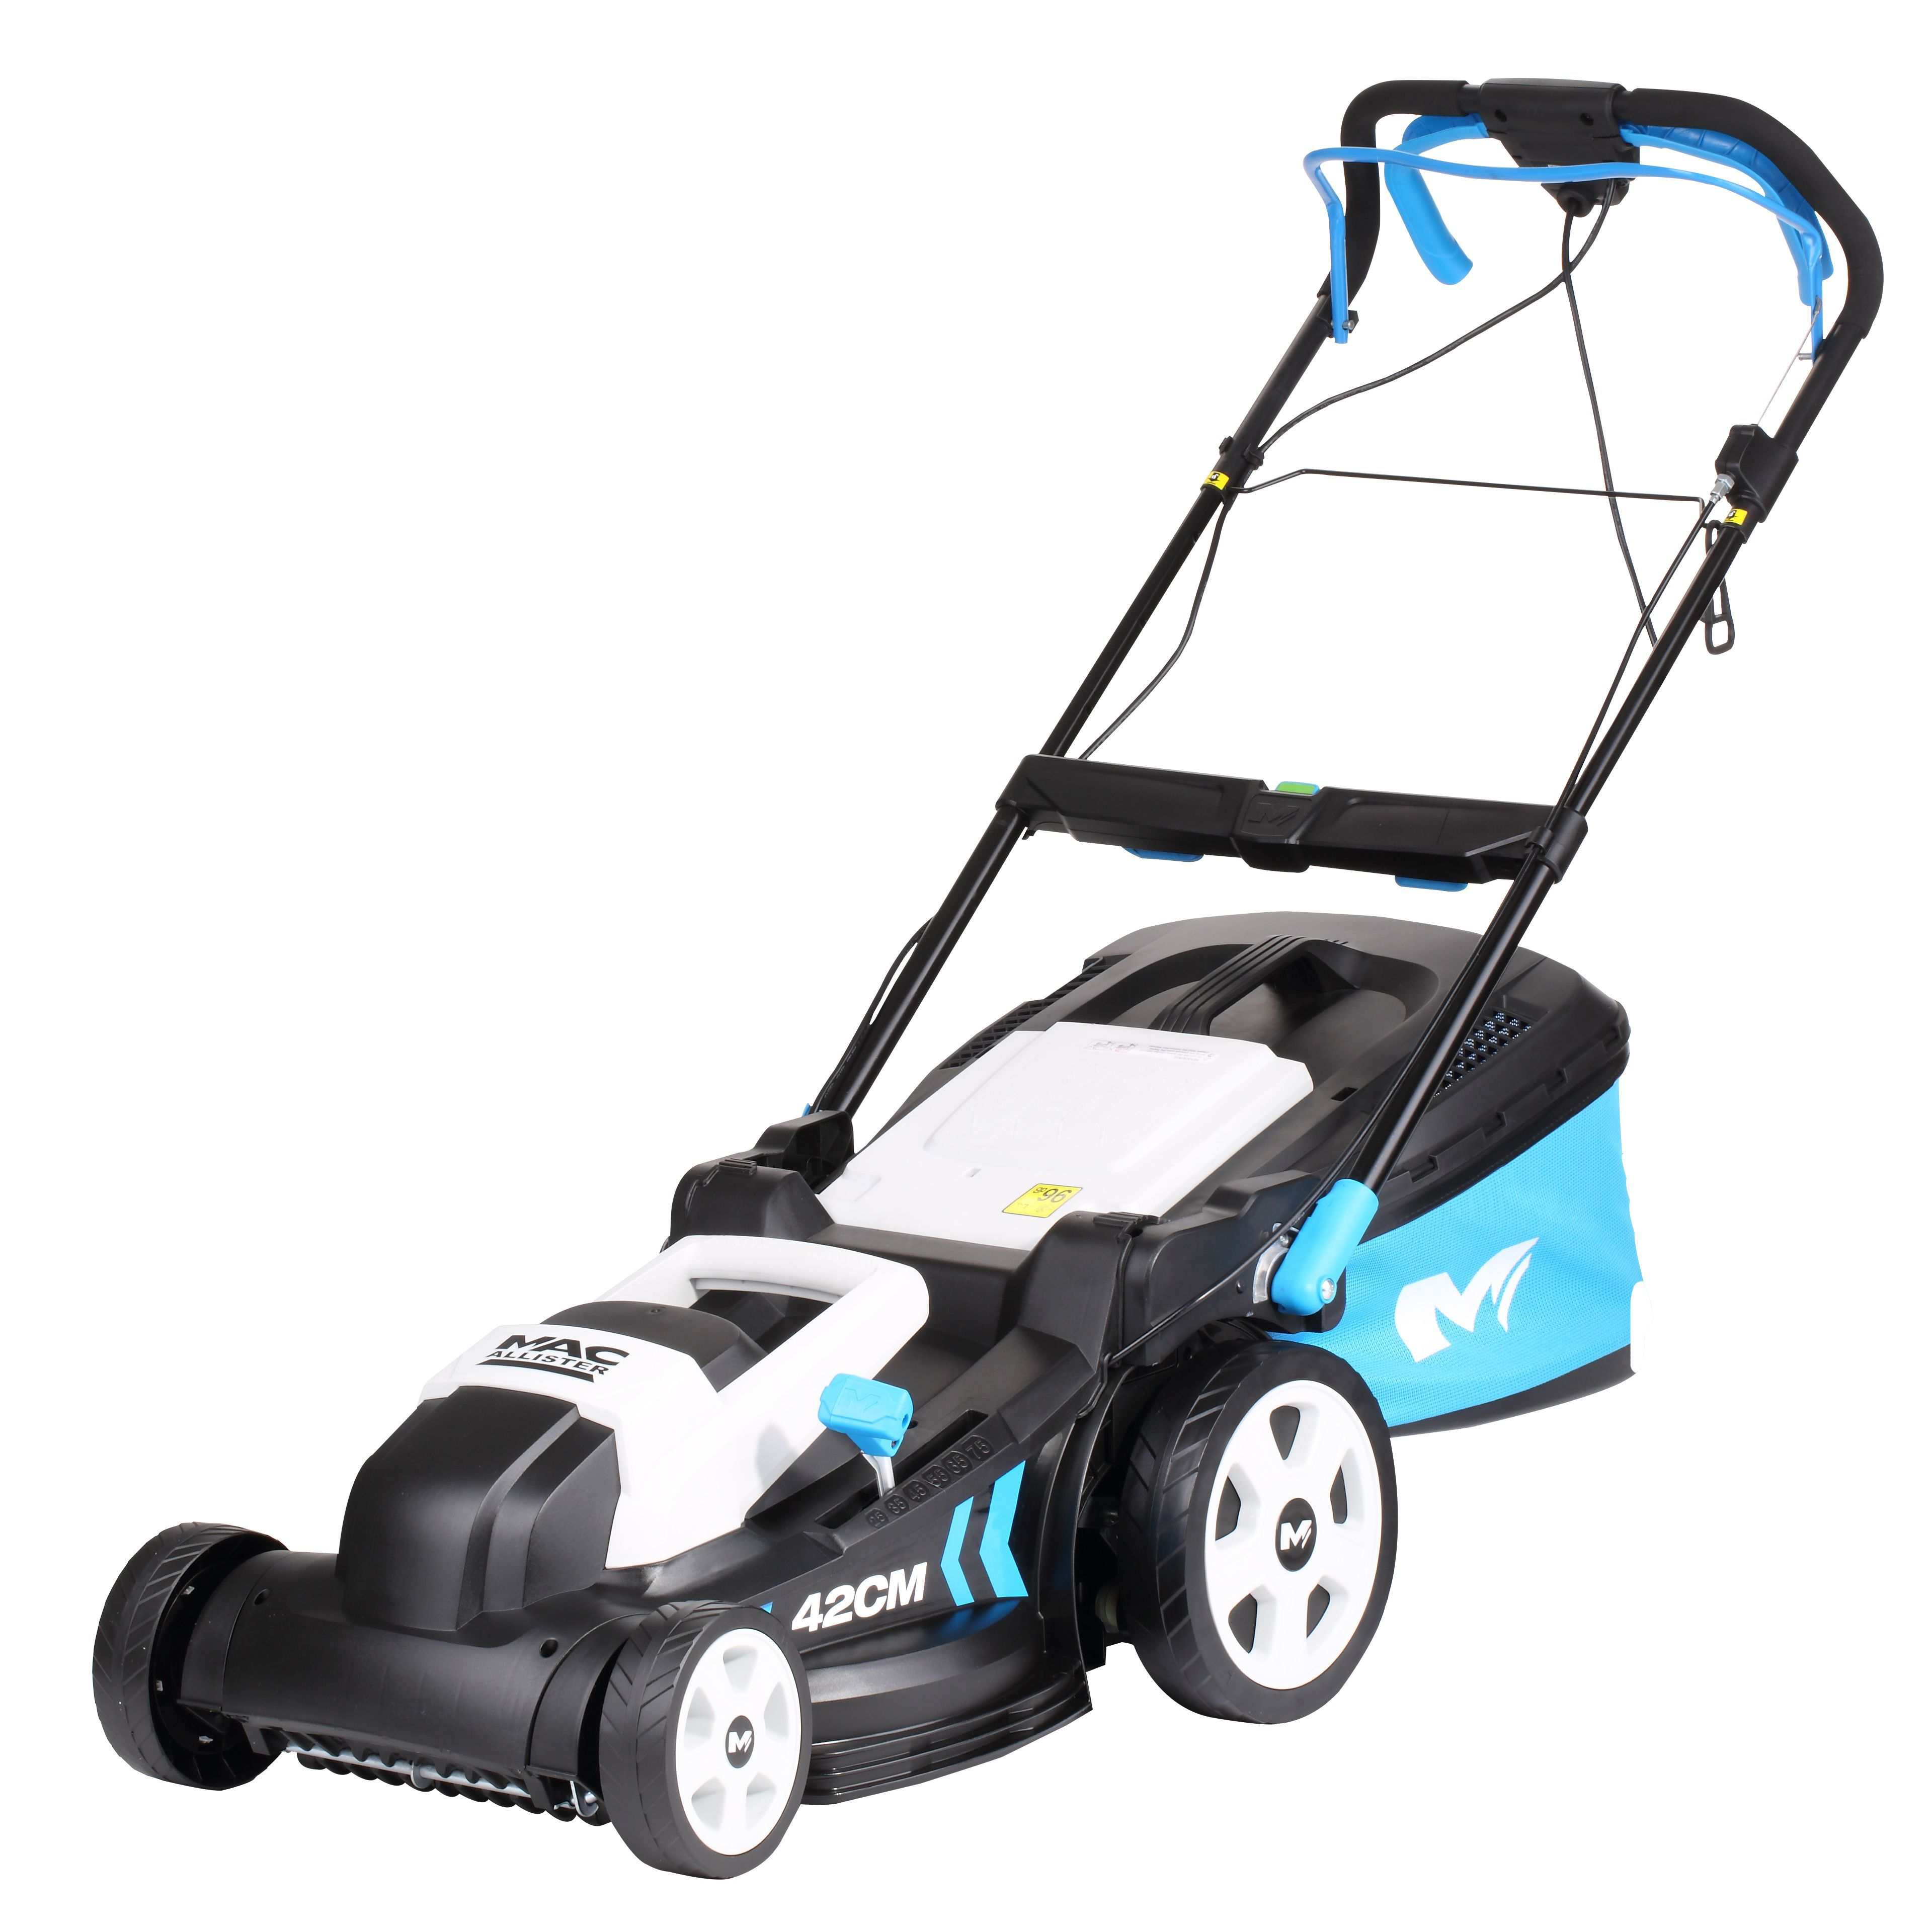 mac allister 1800w corded rotary lawnmower departments diy at b q. Black Bedroom Furniture Sets. Home Design Ideas